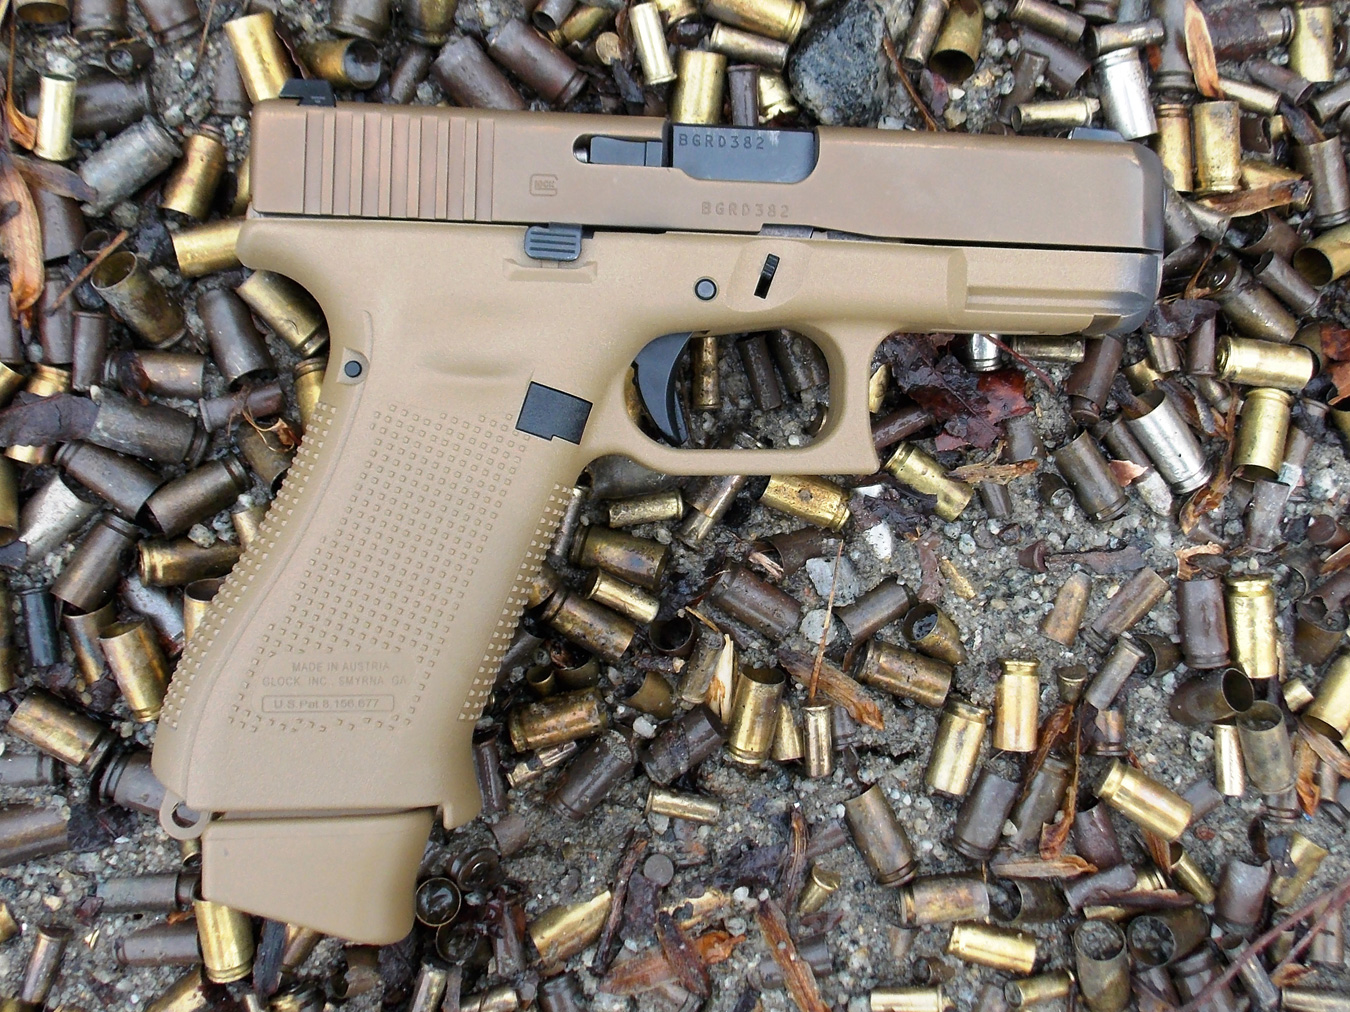 Glock 19x profile right on a bed of spent cartridge cases